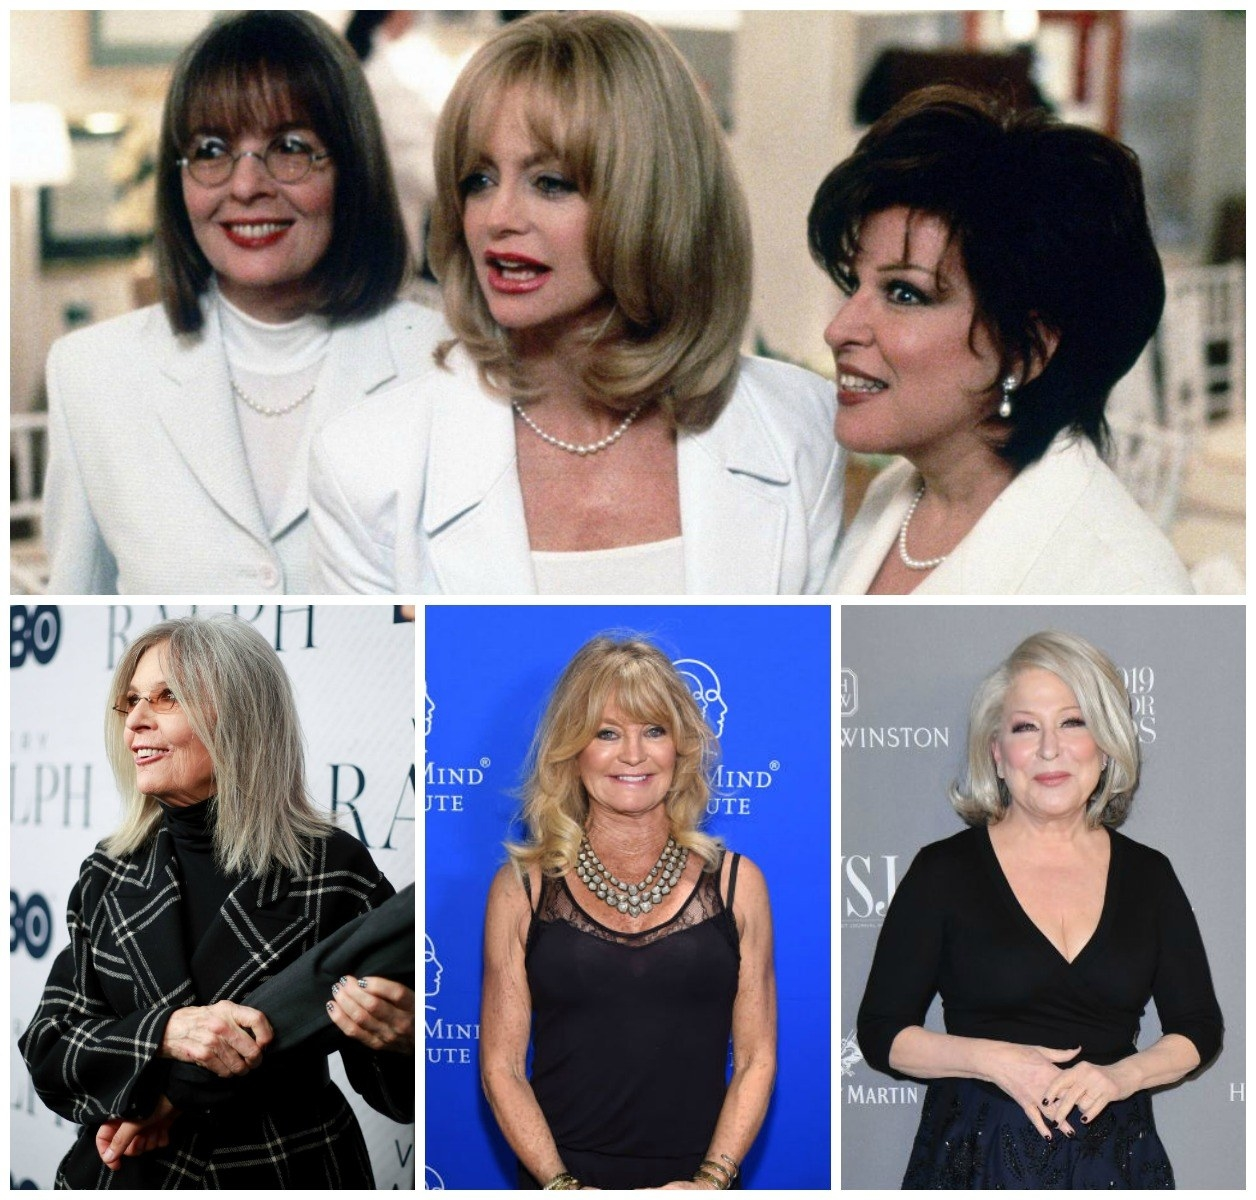 Diane Keaton, Goldie Hawn, and Bette Midler in First Wive's Club and today